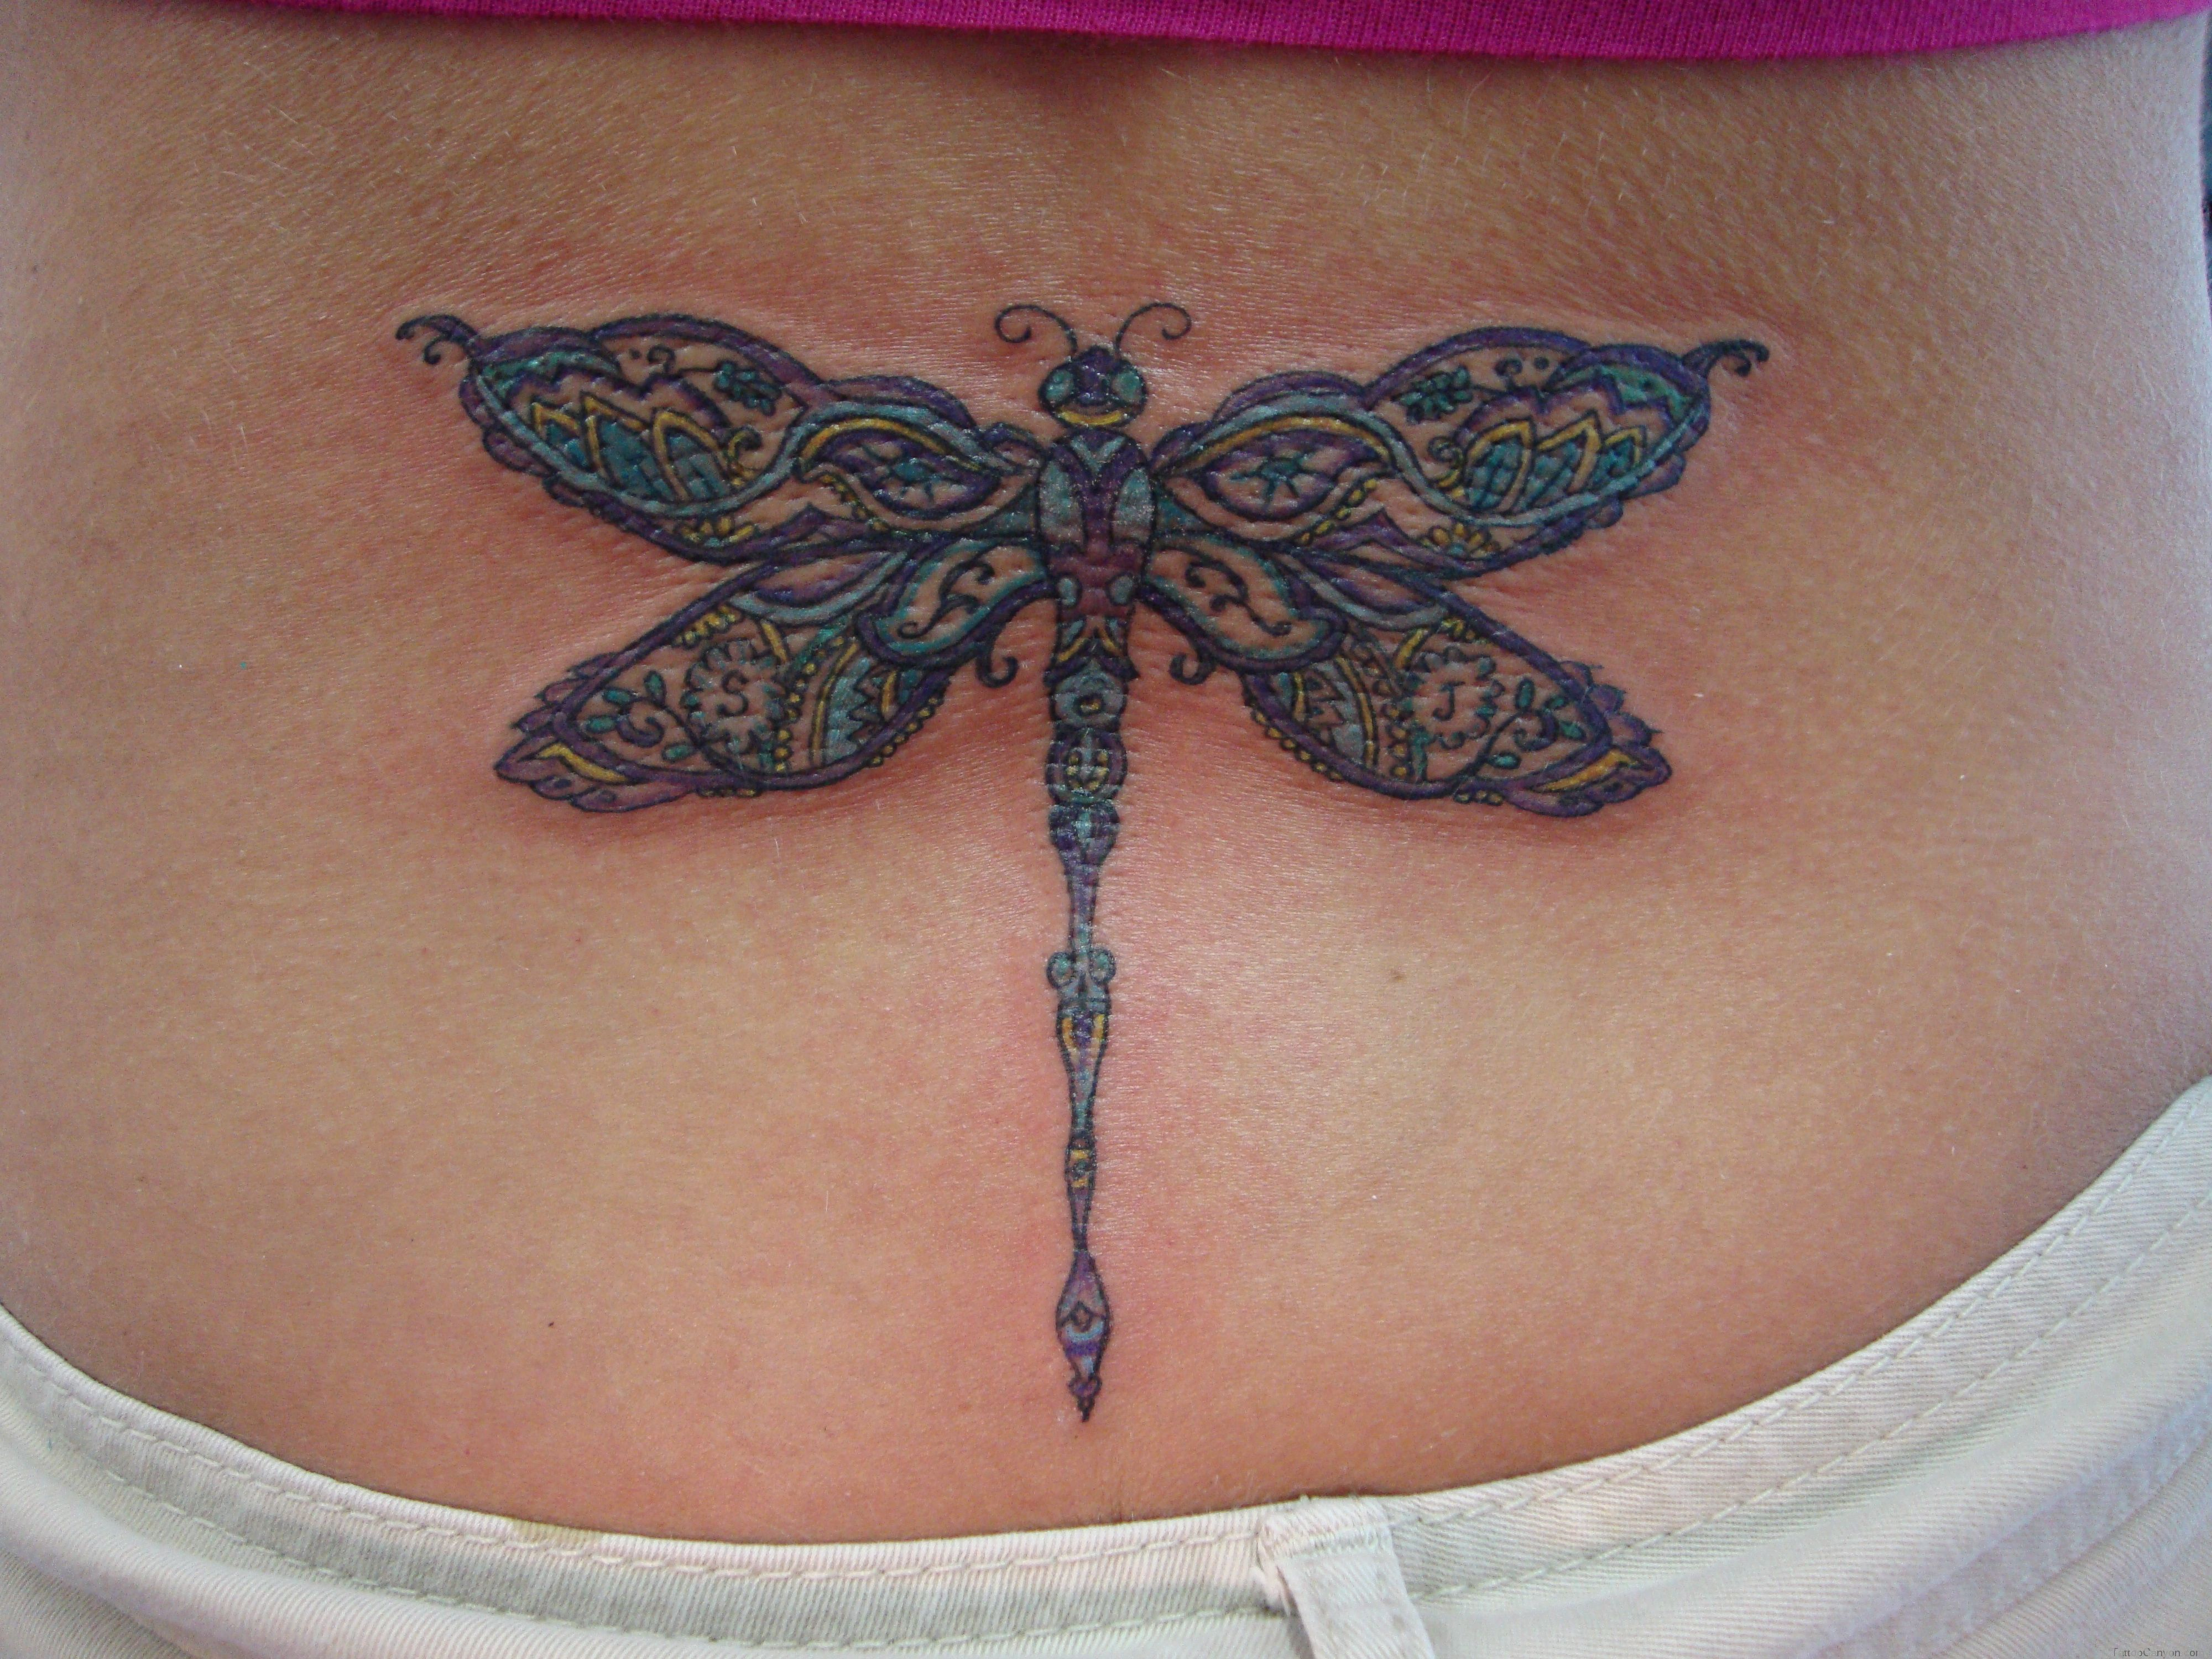 Large Dragonfly Tattoo With Detailed Paisley Pattern By